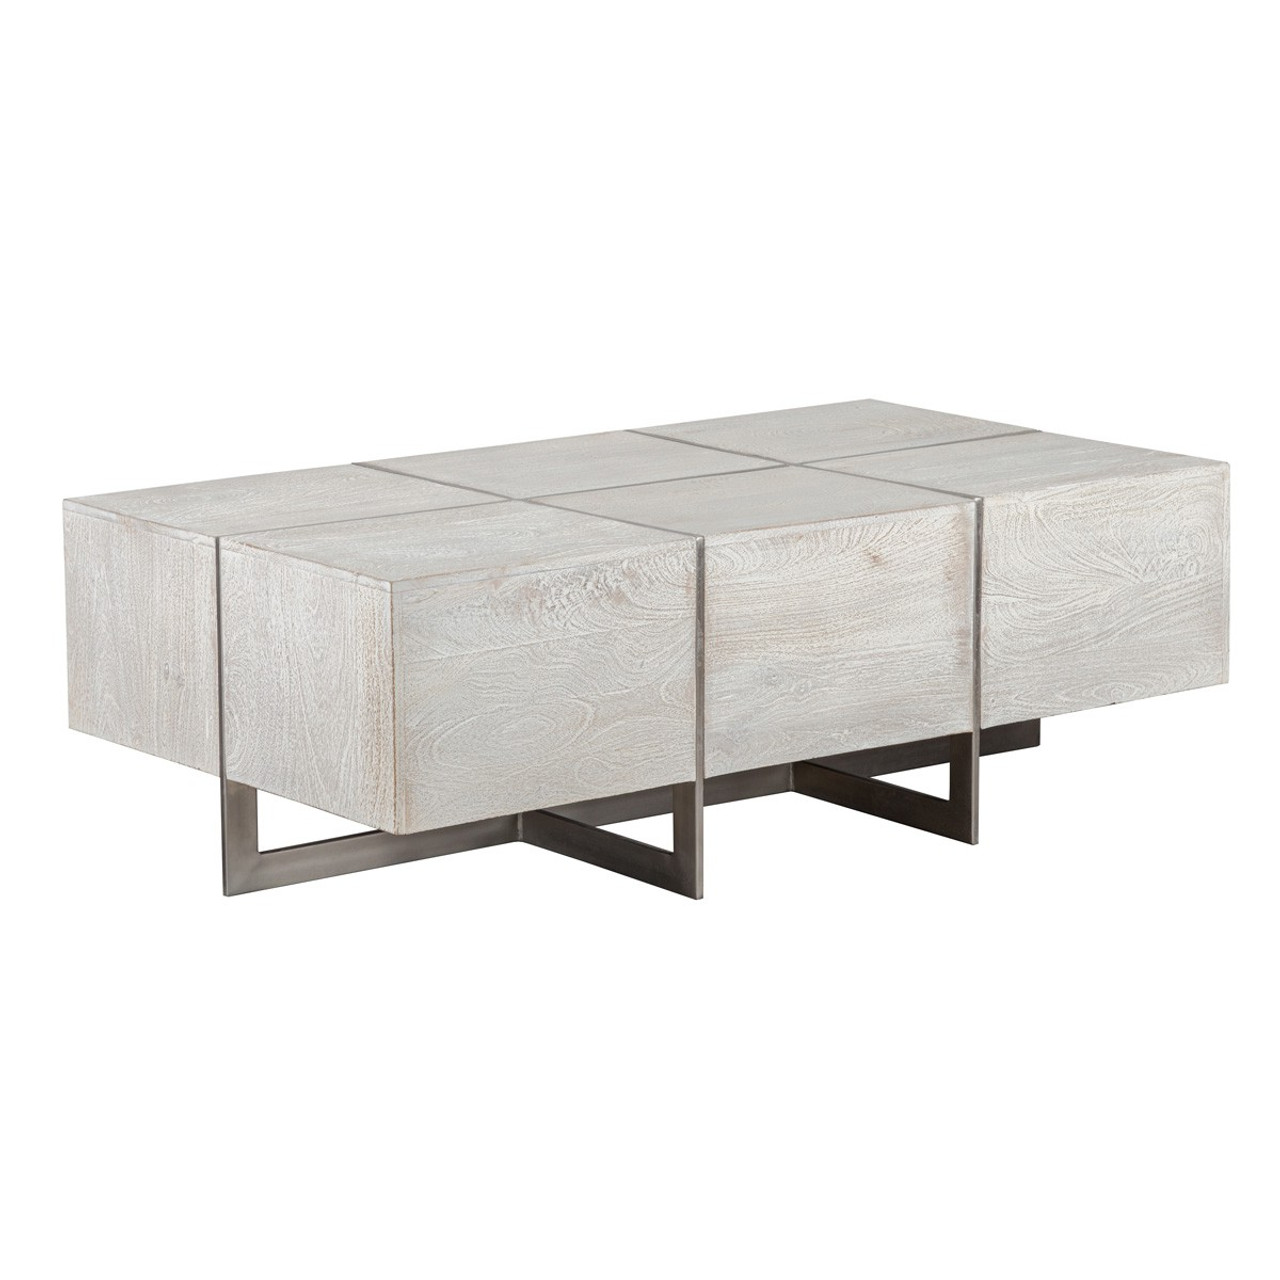 bf89dfc882 Uptown Whitewashed Solid Wood Coffee Table 54